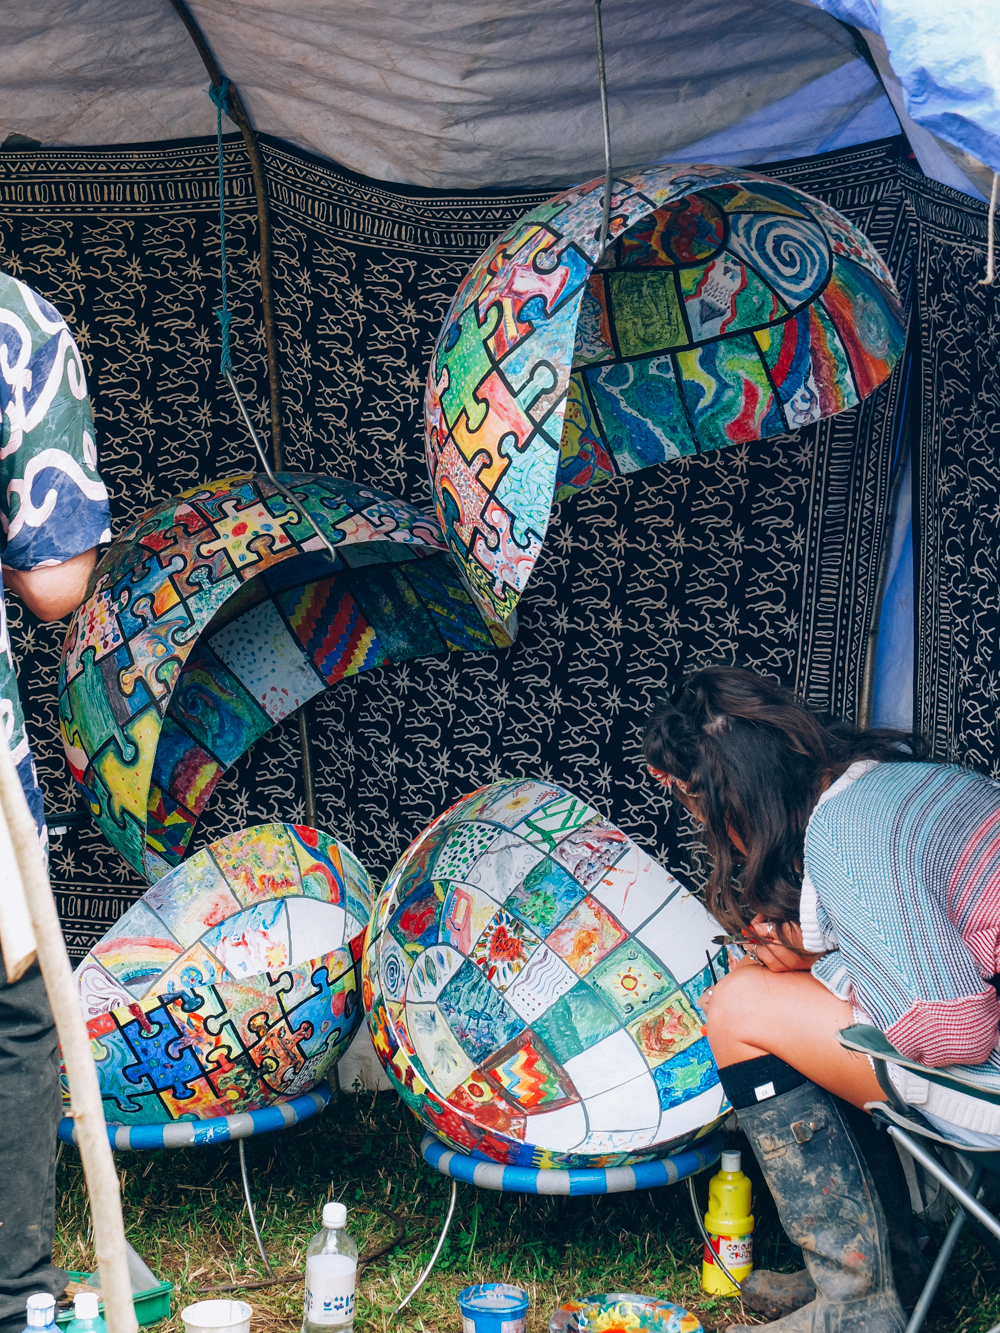 (Above) Photos of The Greencrafts Village, Glastonbury Festival 2015: A Drop of the Ocean , makes Porcelain bells using sgraffito with Glastonbury clay